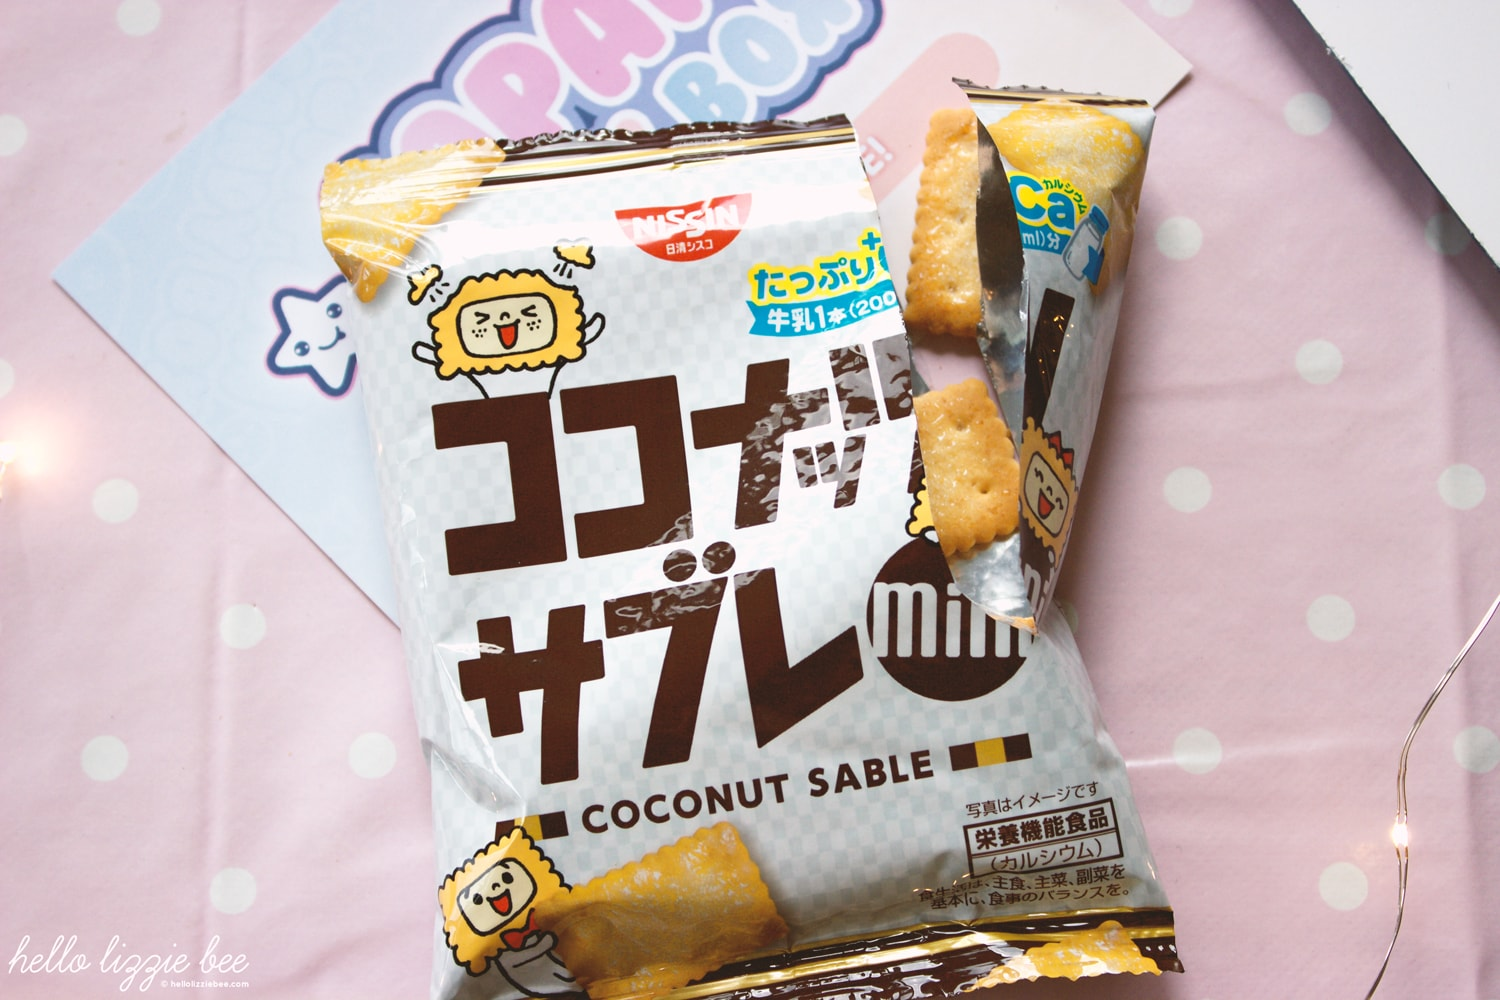 Nissin Coconut Mini Sable Biscuits